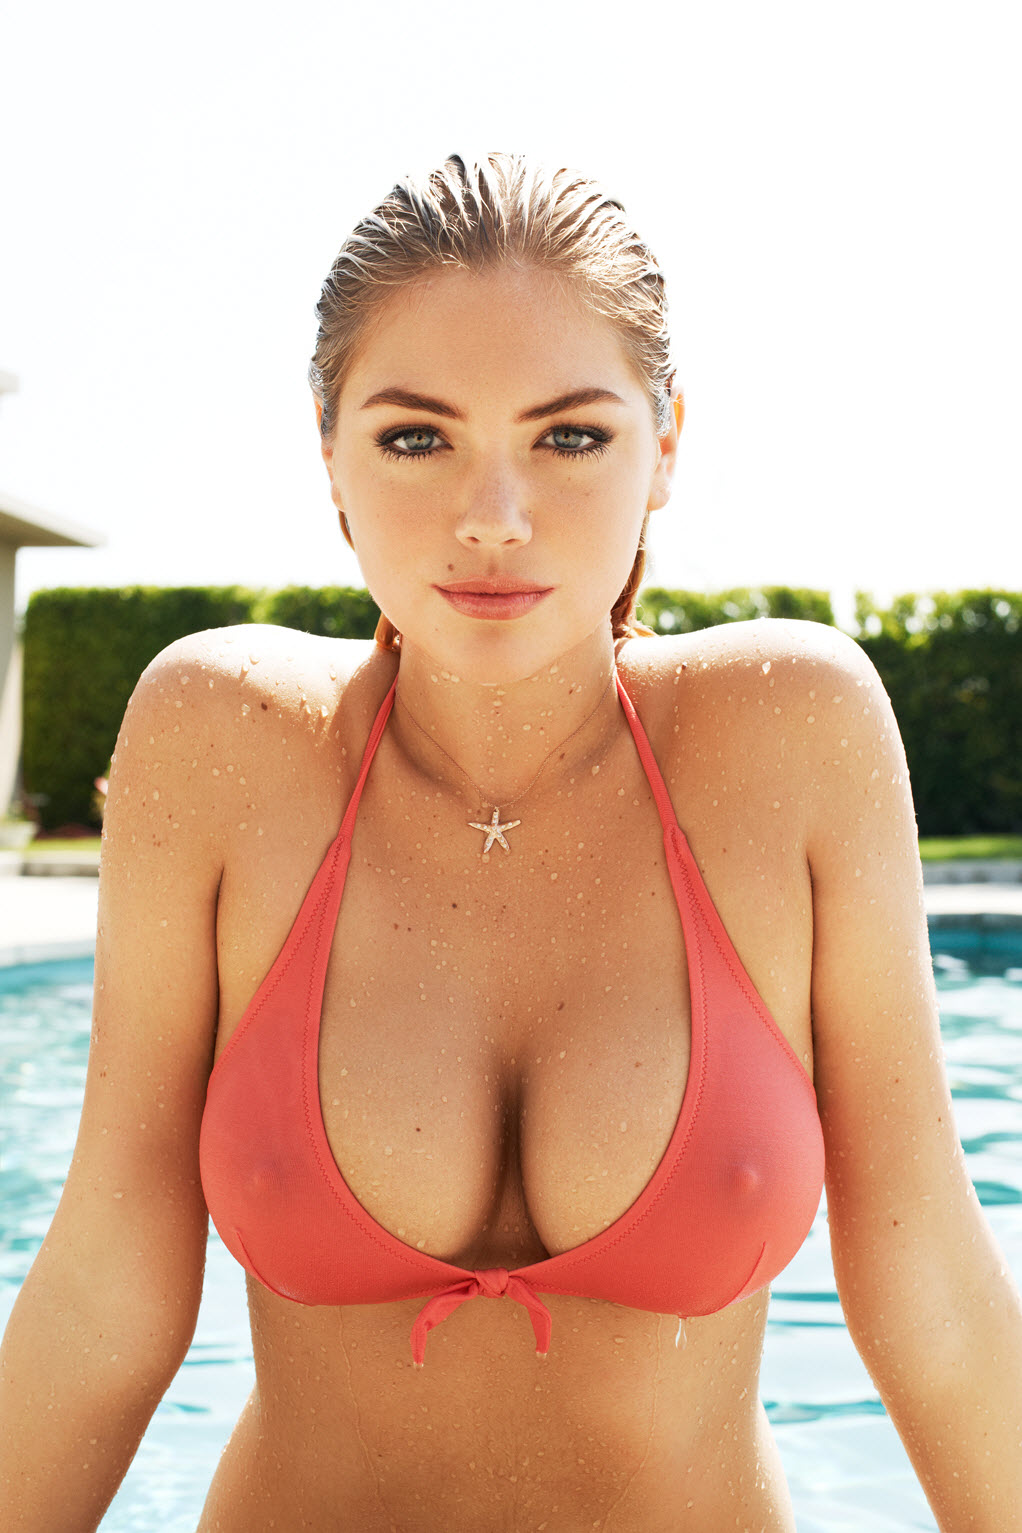 kate upton in wet t shirt and bikini terry richardson photoshoot outtakes picx. Black Bedroom Furniture Sets. Home Design Ideas